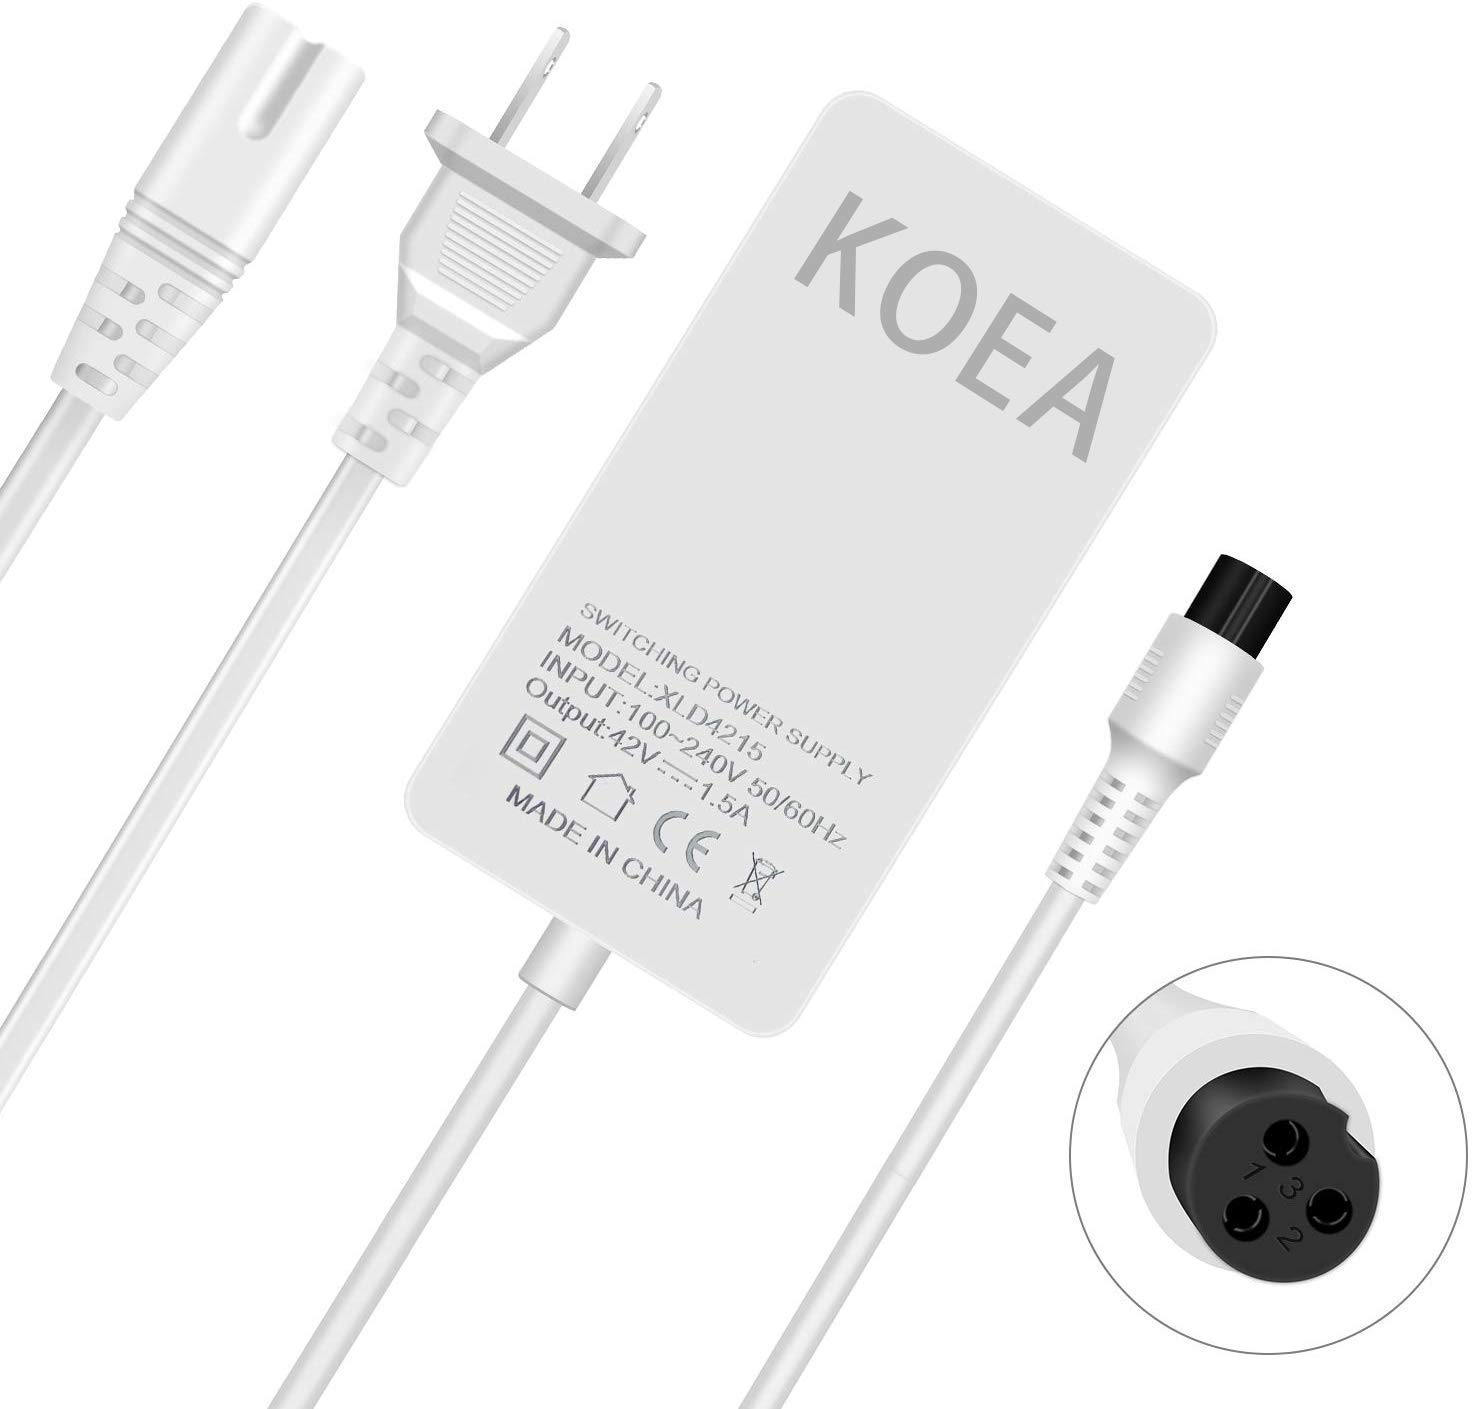 koea New Electric Scooter Bike Battery Charger,3-Prong Inline Connector,42V 1.5A Lithium Battery Charger for Electric Scoote Pocket Mod Sports Mod and Dirt Quad Power Supply Cord Plug.(White)